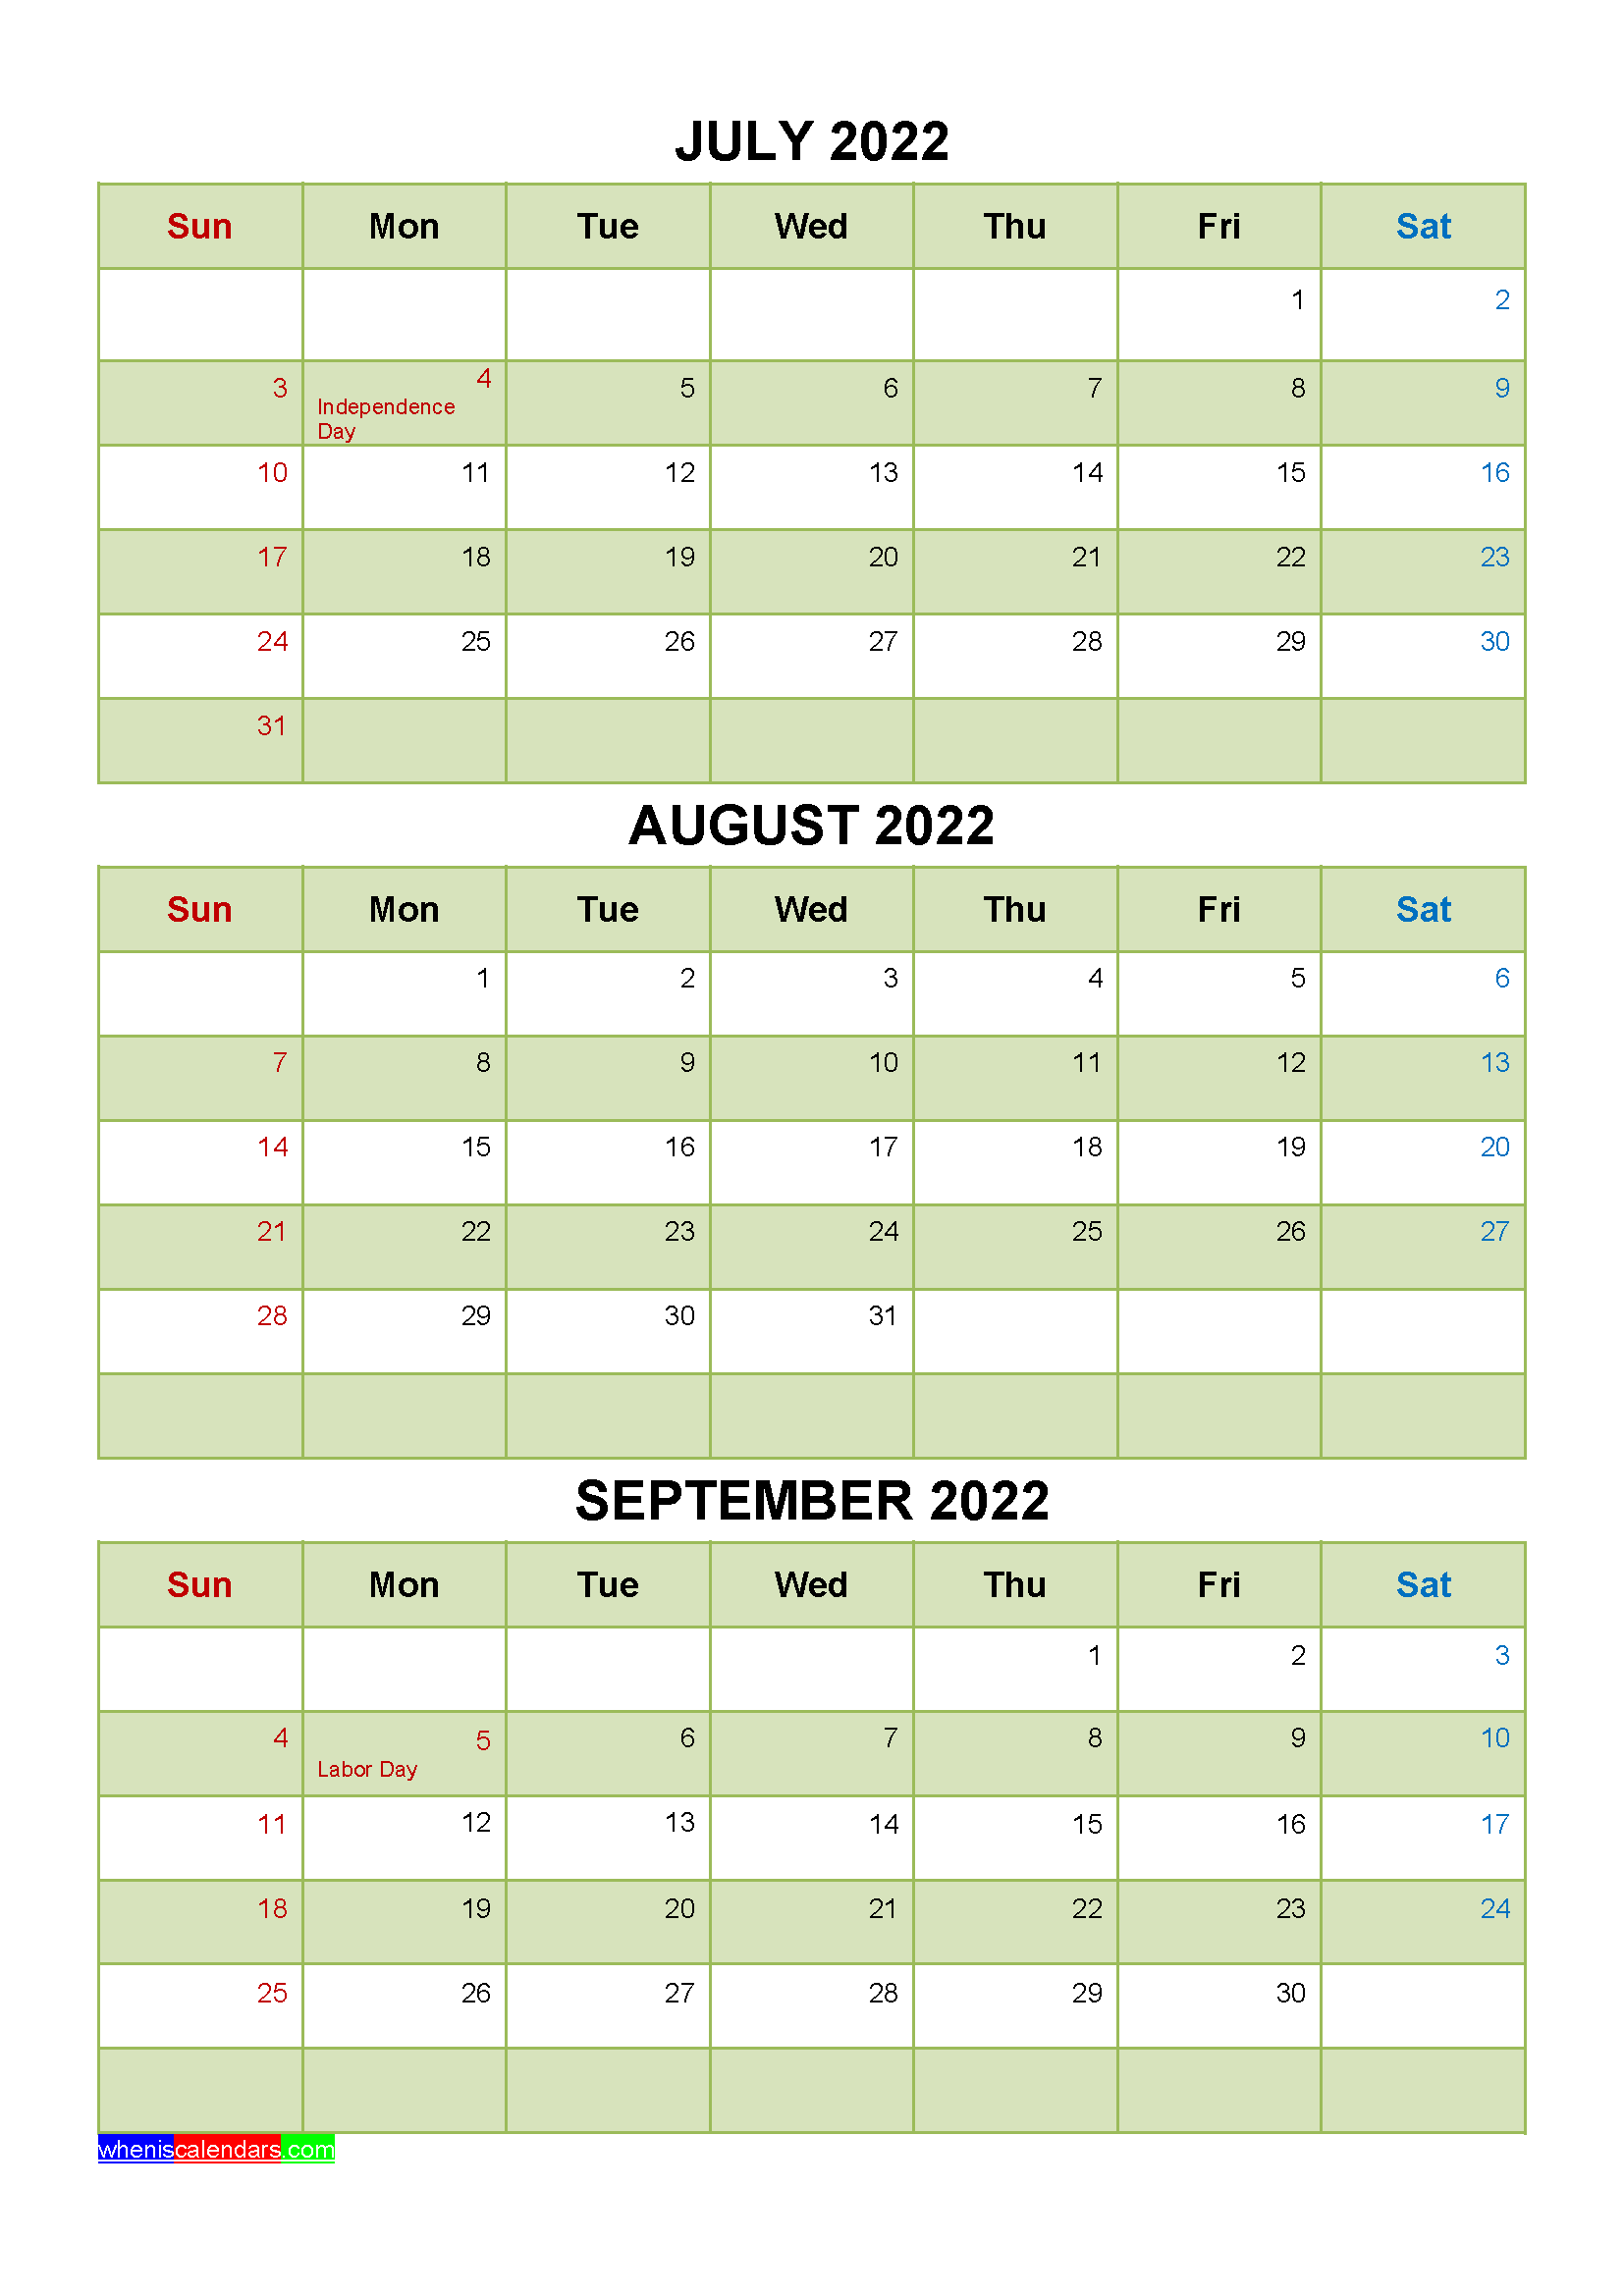 September 2022 Calendar With Holidays.July August September 2022 Calendar With Holidays Printable Four Quarters Printable Calendar July January February March Holiday Printables